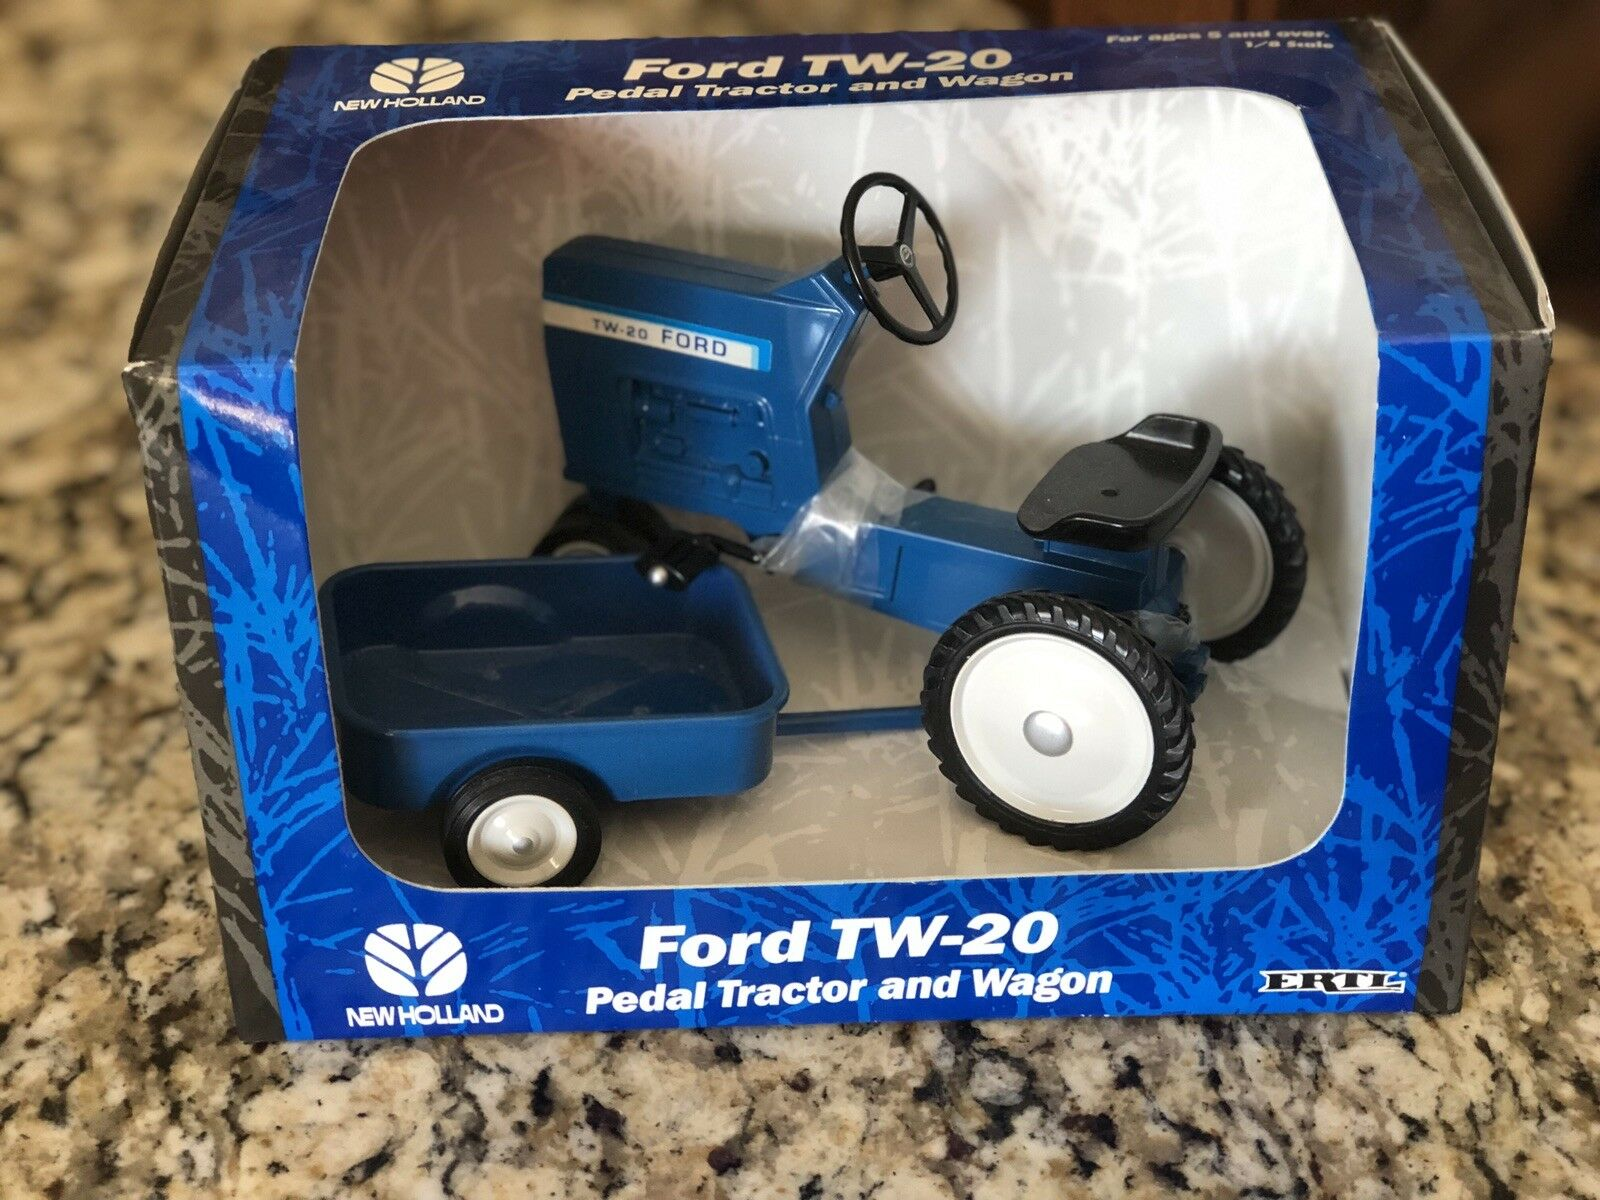 ERTL FORD NEW HOLLAND DIE CAST TW-20 PEDAL TRACTOR & WAGON 1 8 scale